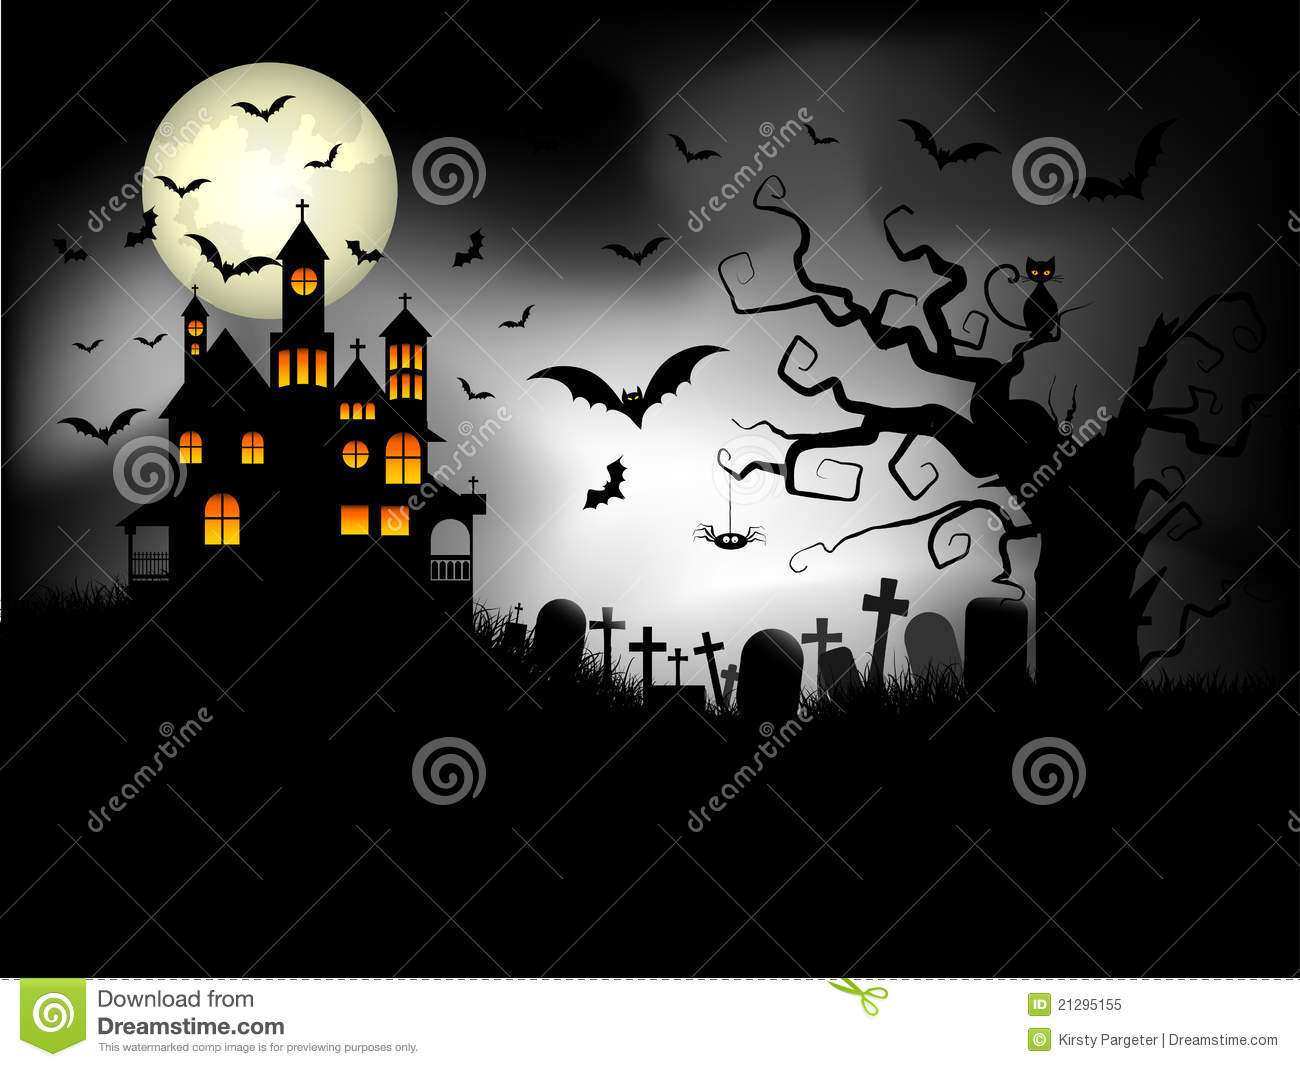 spooky halloween background royalty free stock photo - Spooky Halloween Pictures Free